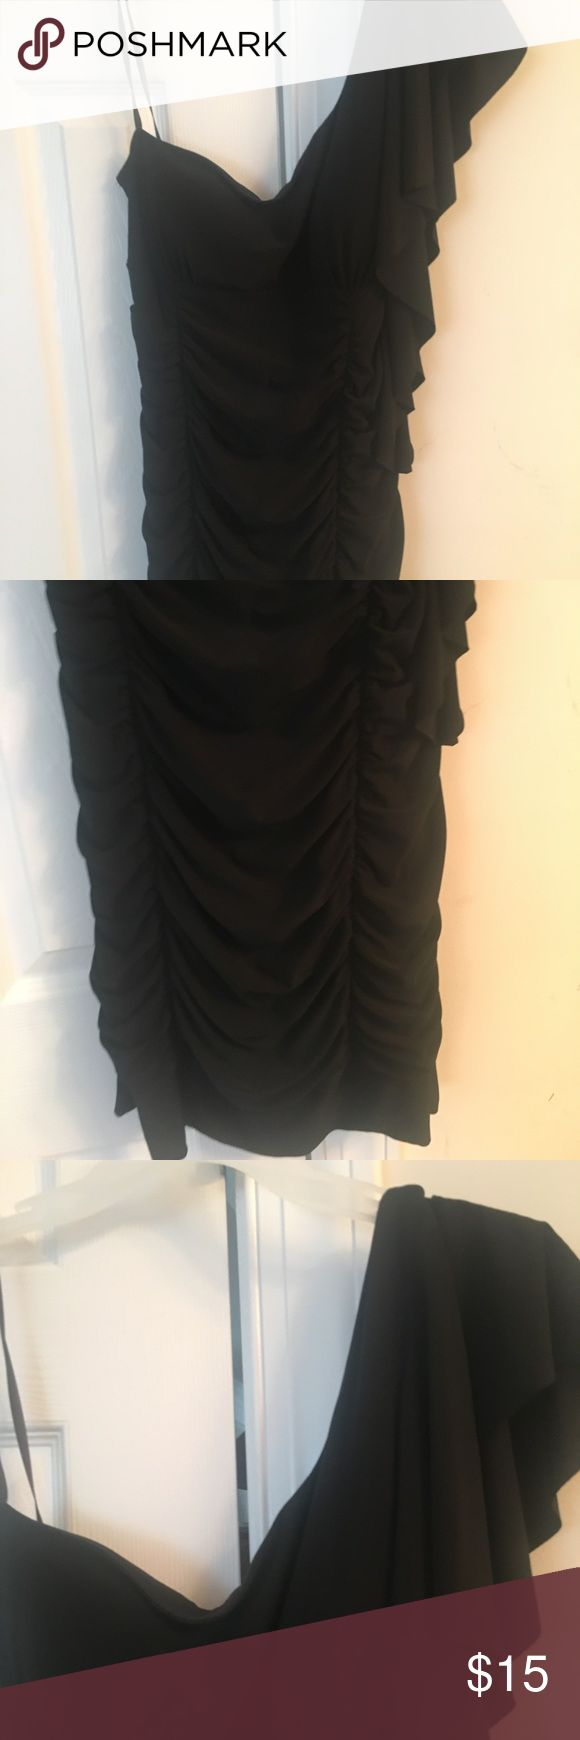 Taboo black slinky long tunic/ dress size XL Excellent condition! No rips or stains..92% poly, 8% spandex Taboo Tops Tunics